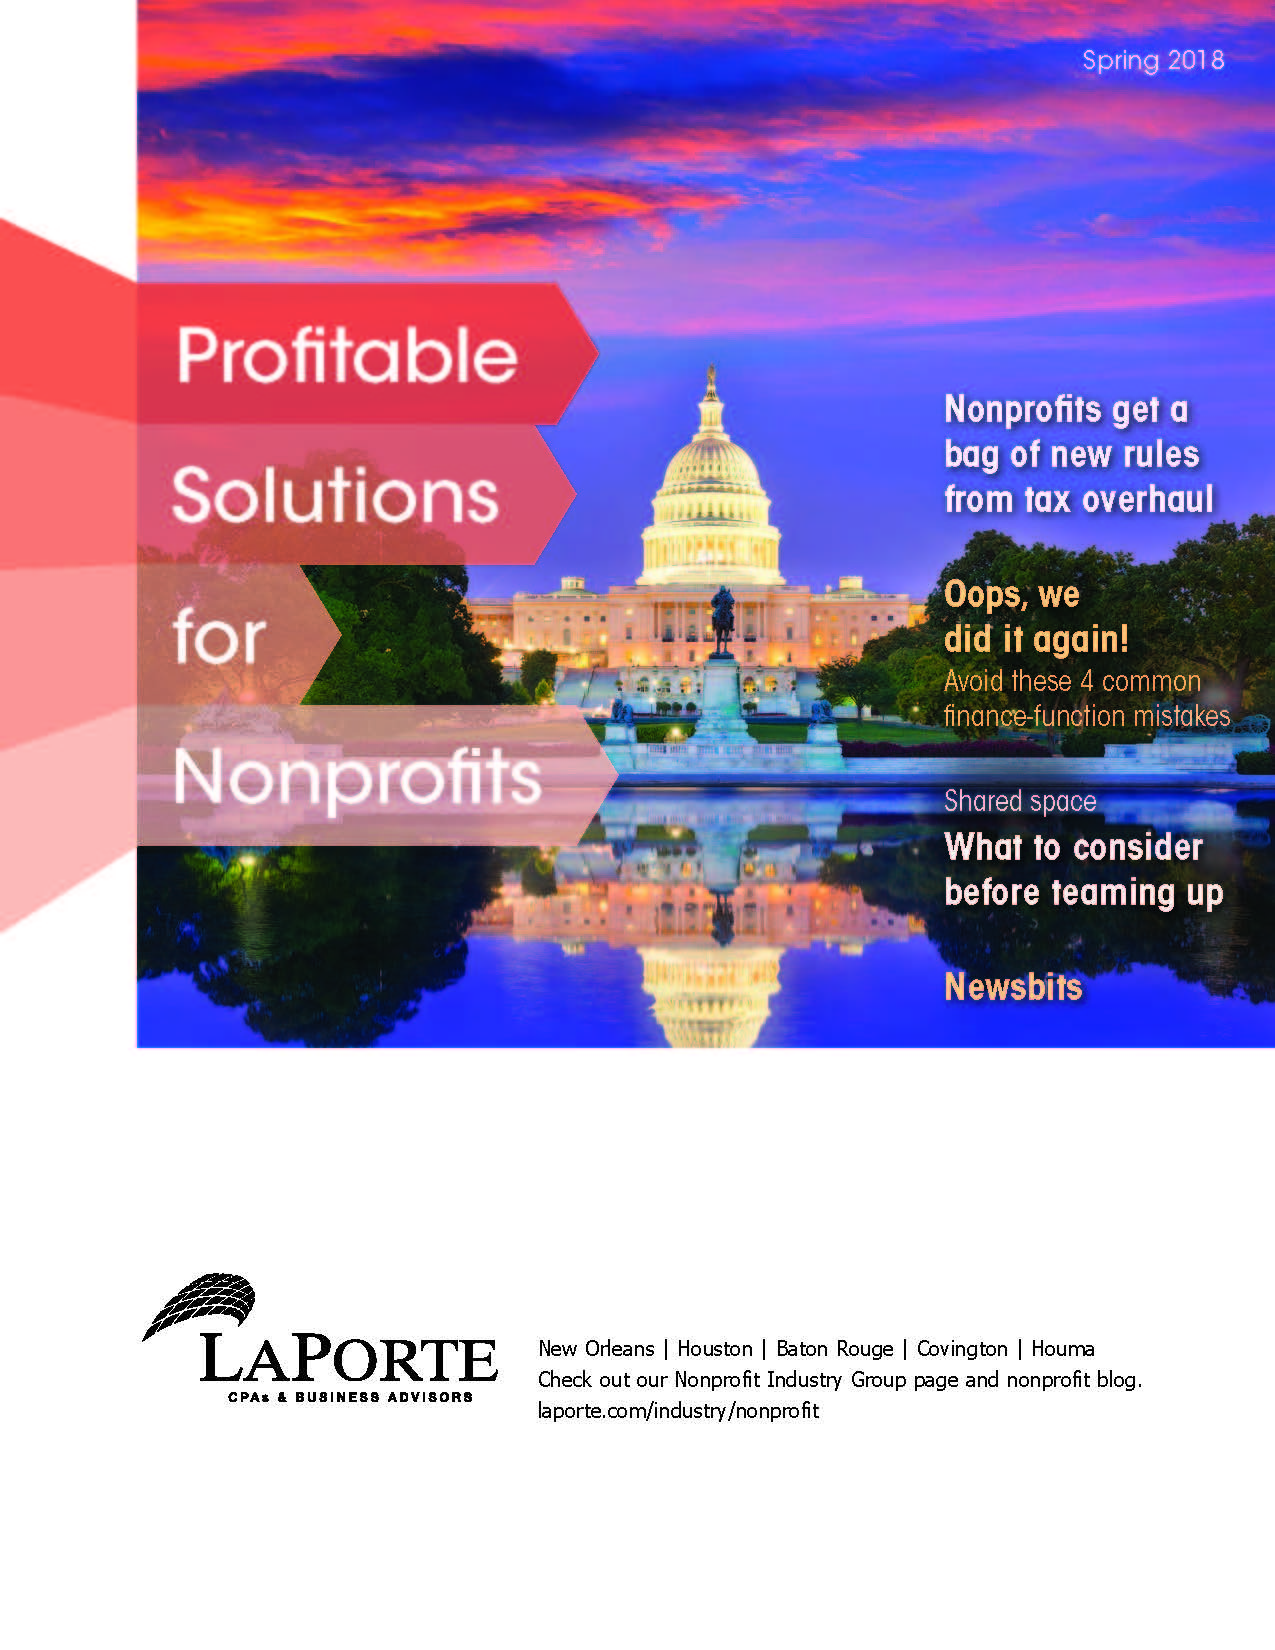 Profitable Solutions for Nonprofits Spring 2018